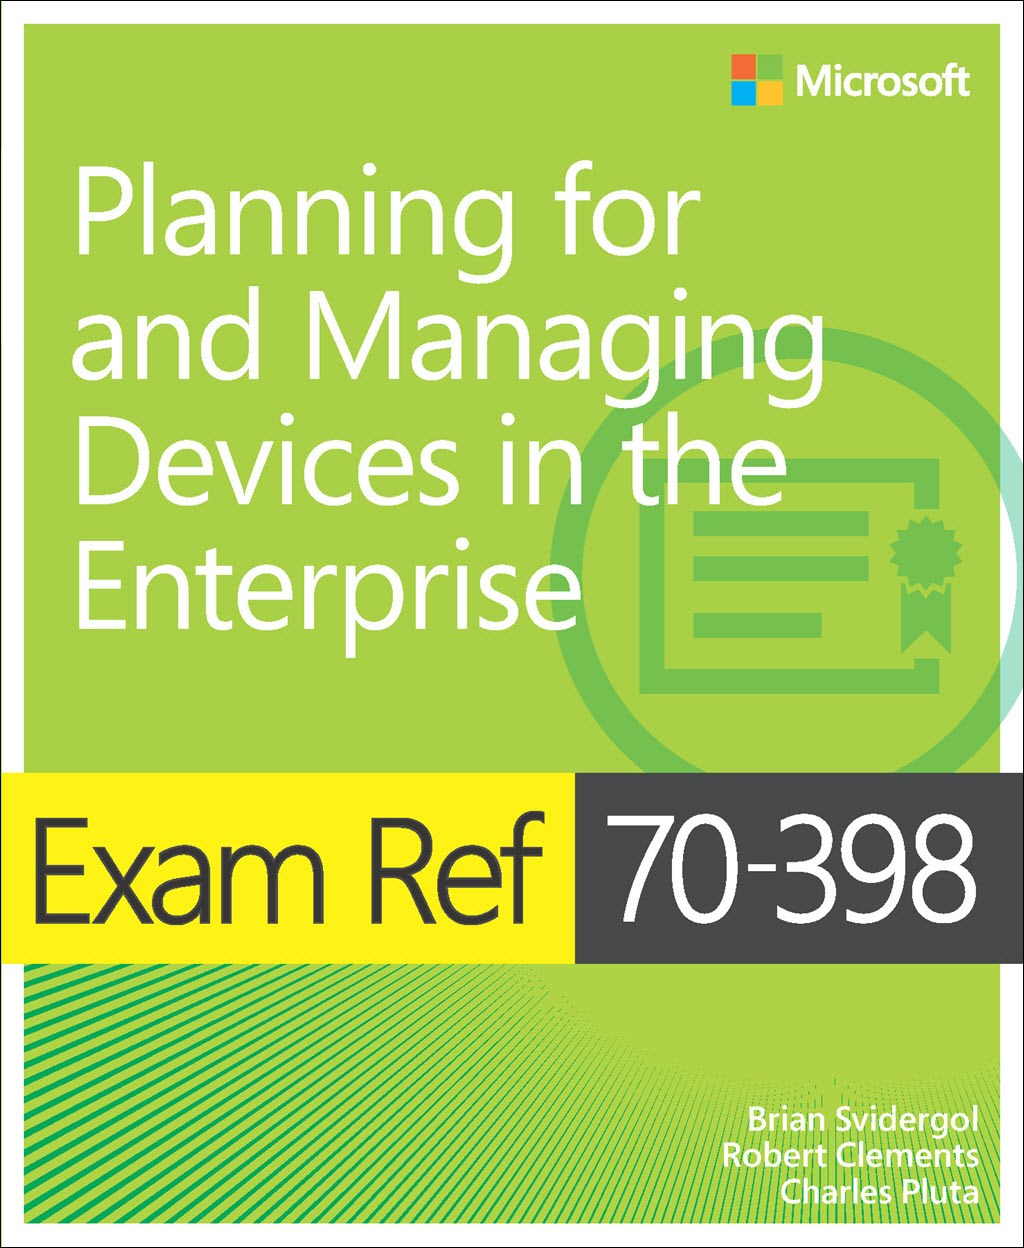 Exam 70 398 planning for and managing devices in the enterprise preparation options xflitez Image collections